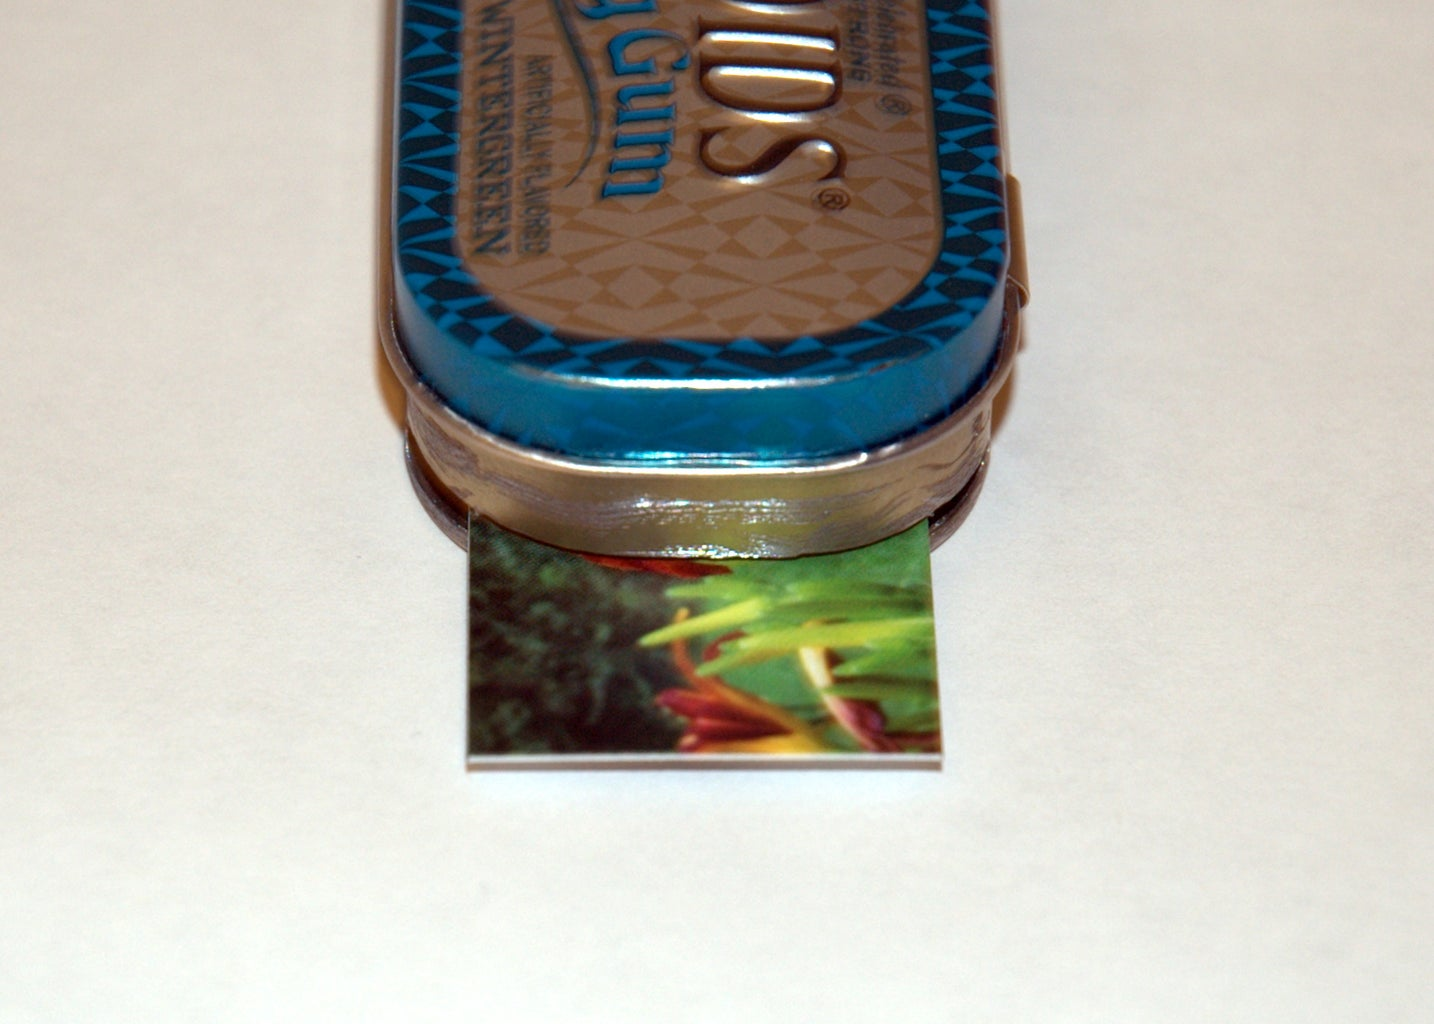 The Finished Tin, Ready to Dispense